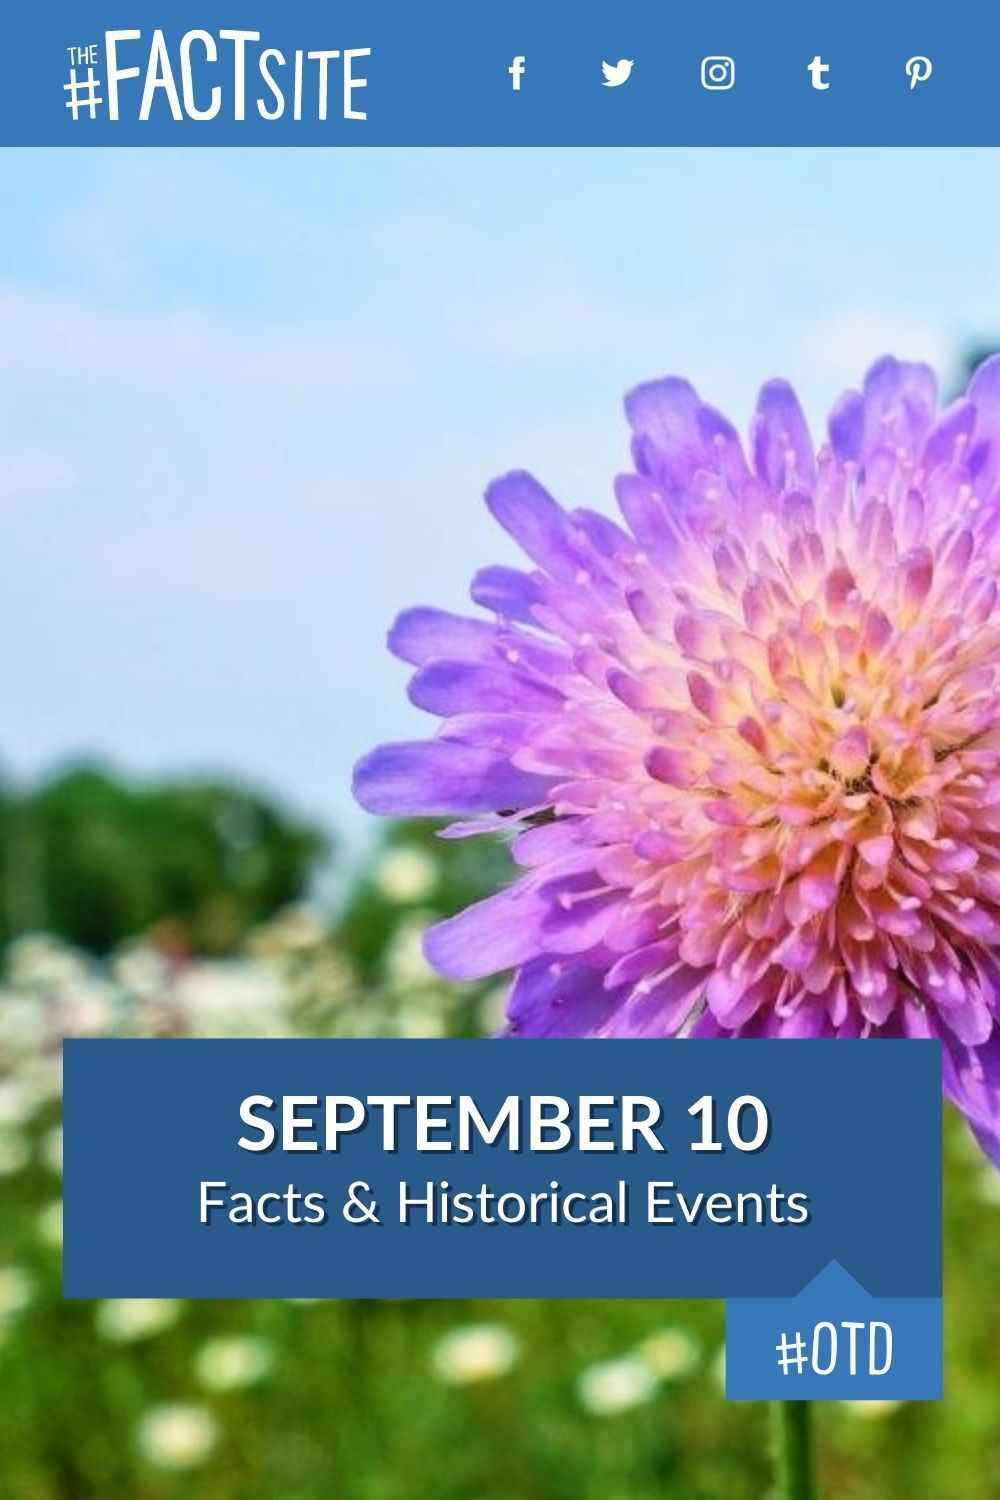 Facts & Historic Events That Happened on September 10